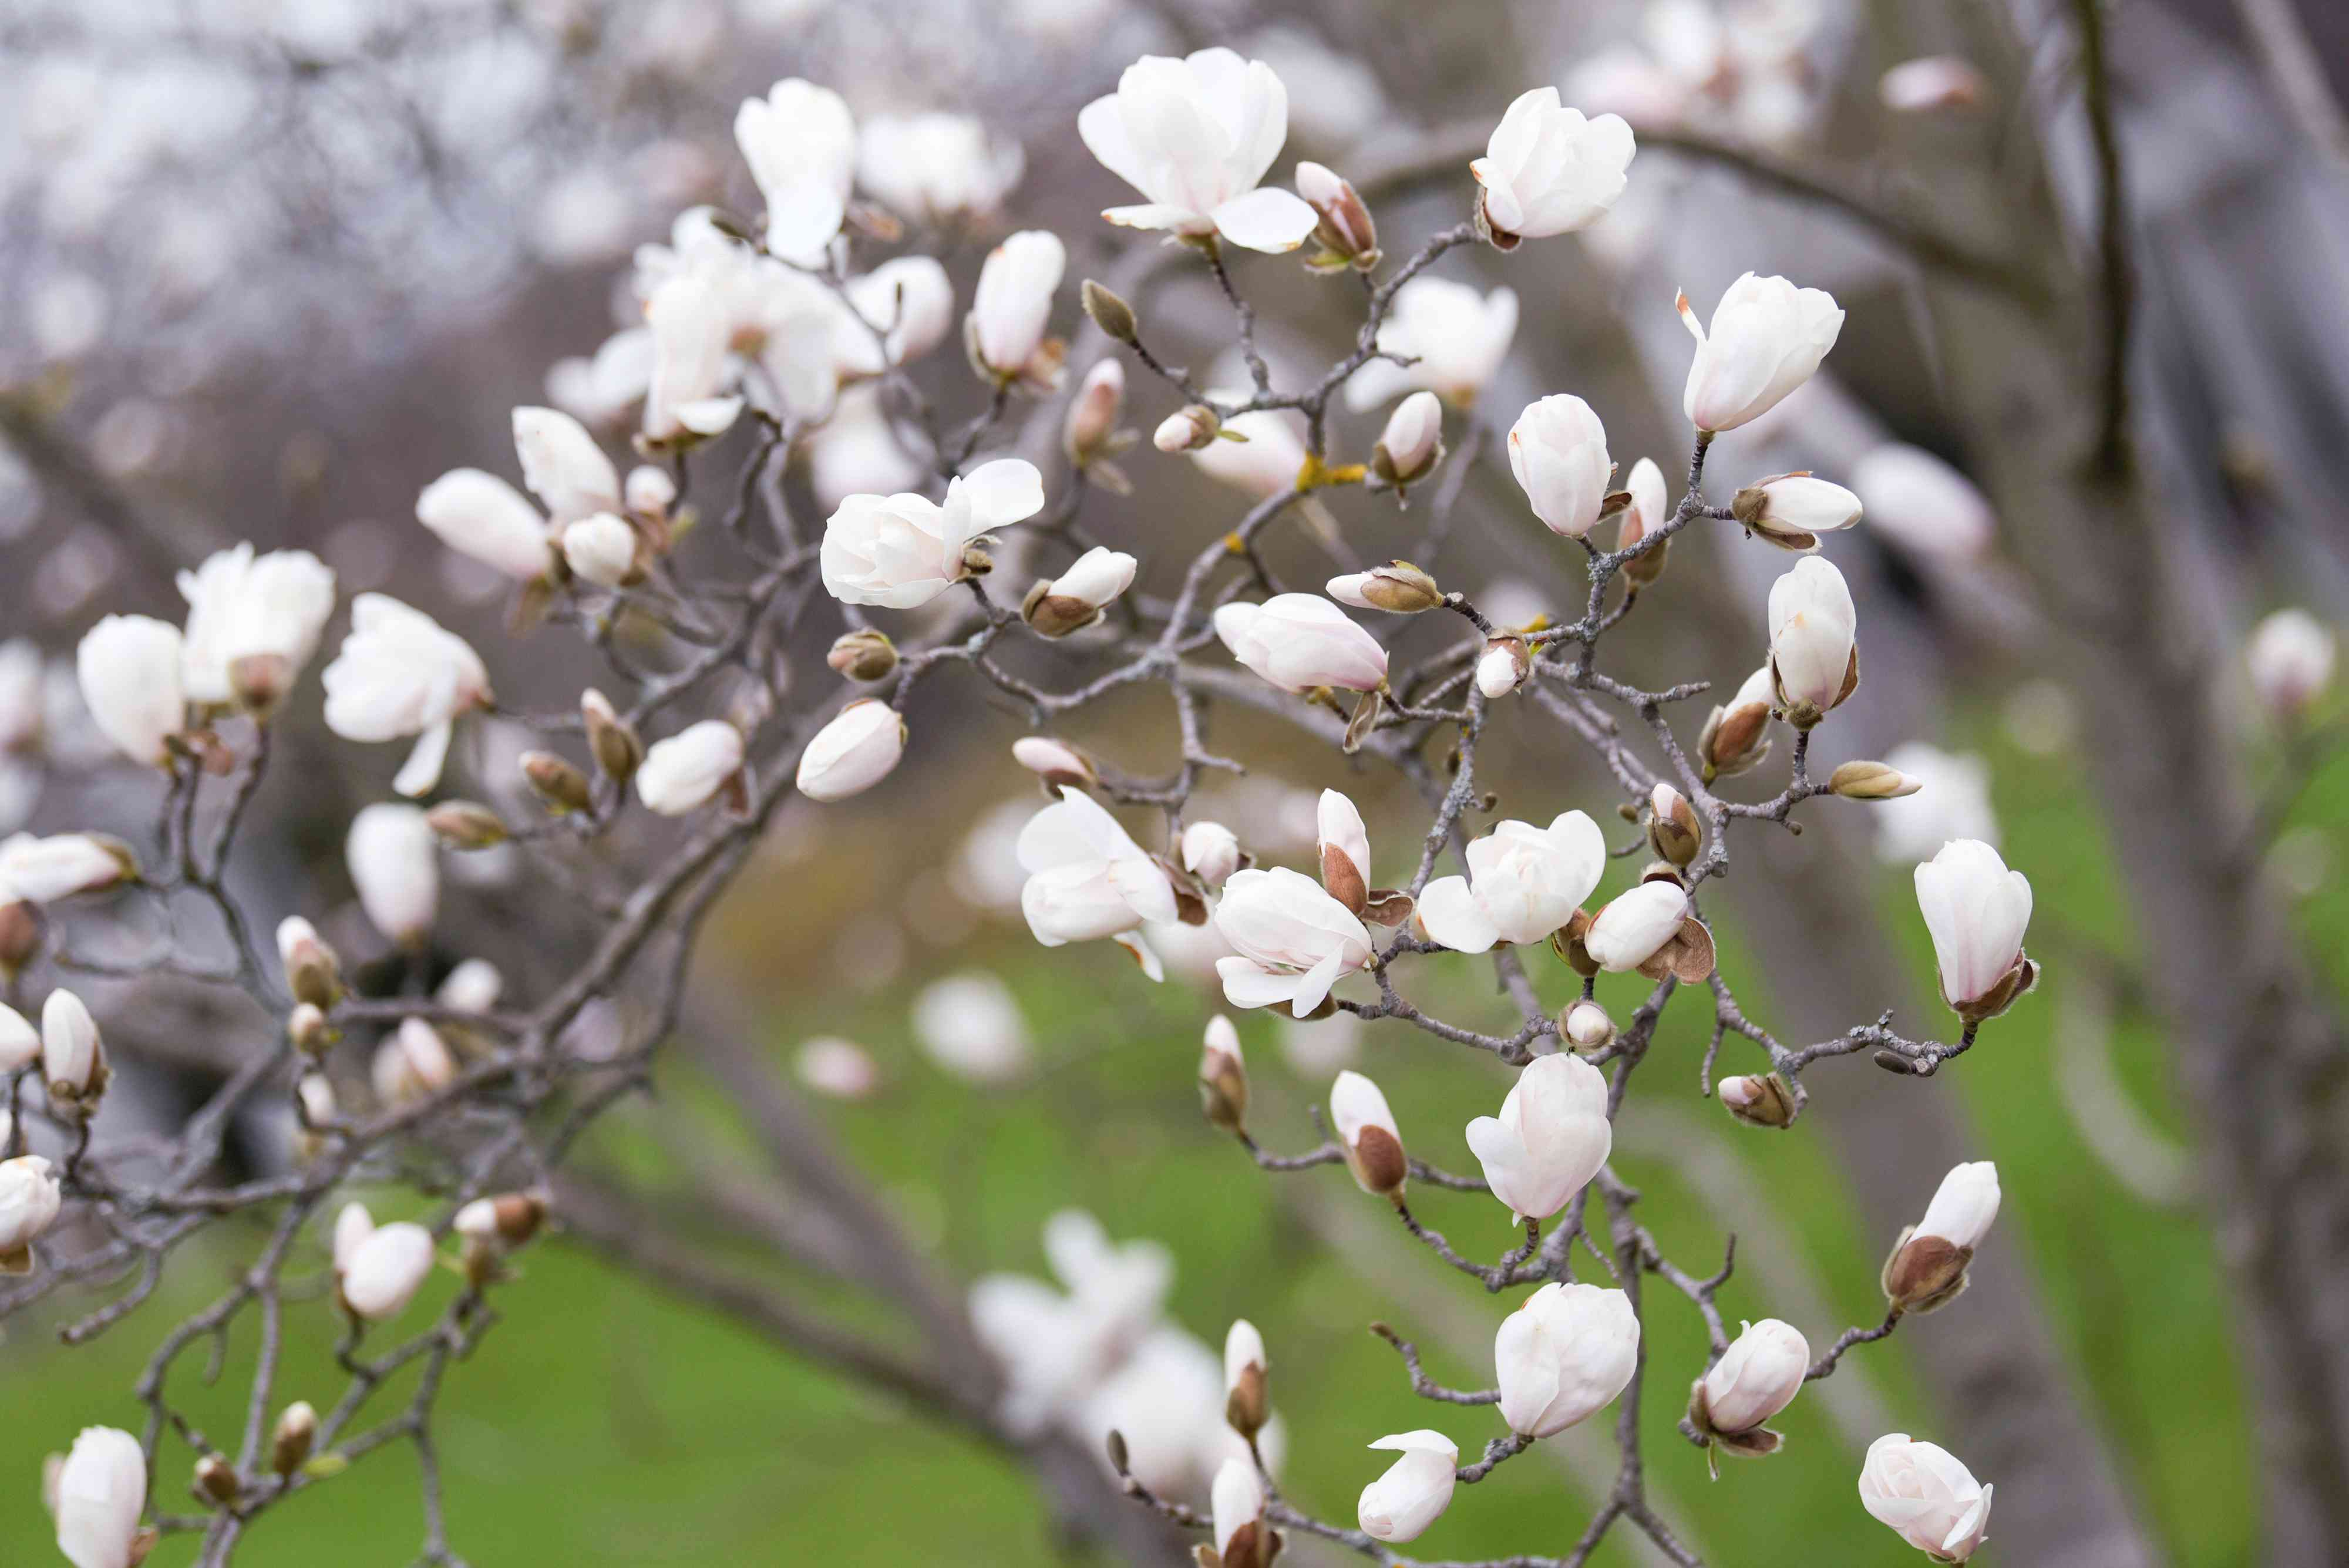 Kobus magnolia tree branch extending forward and curled with white buds and flowers